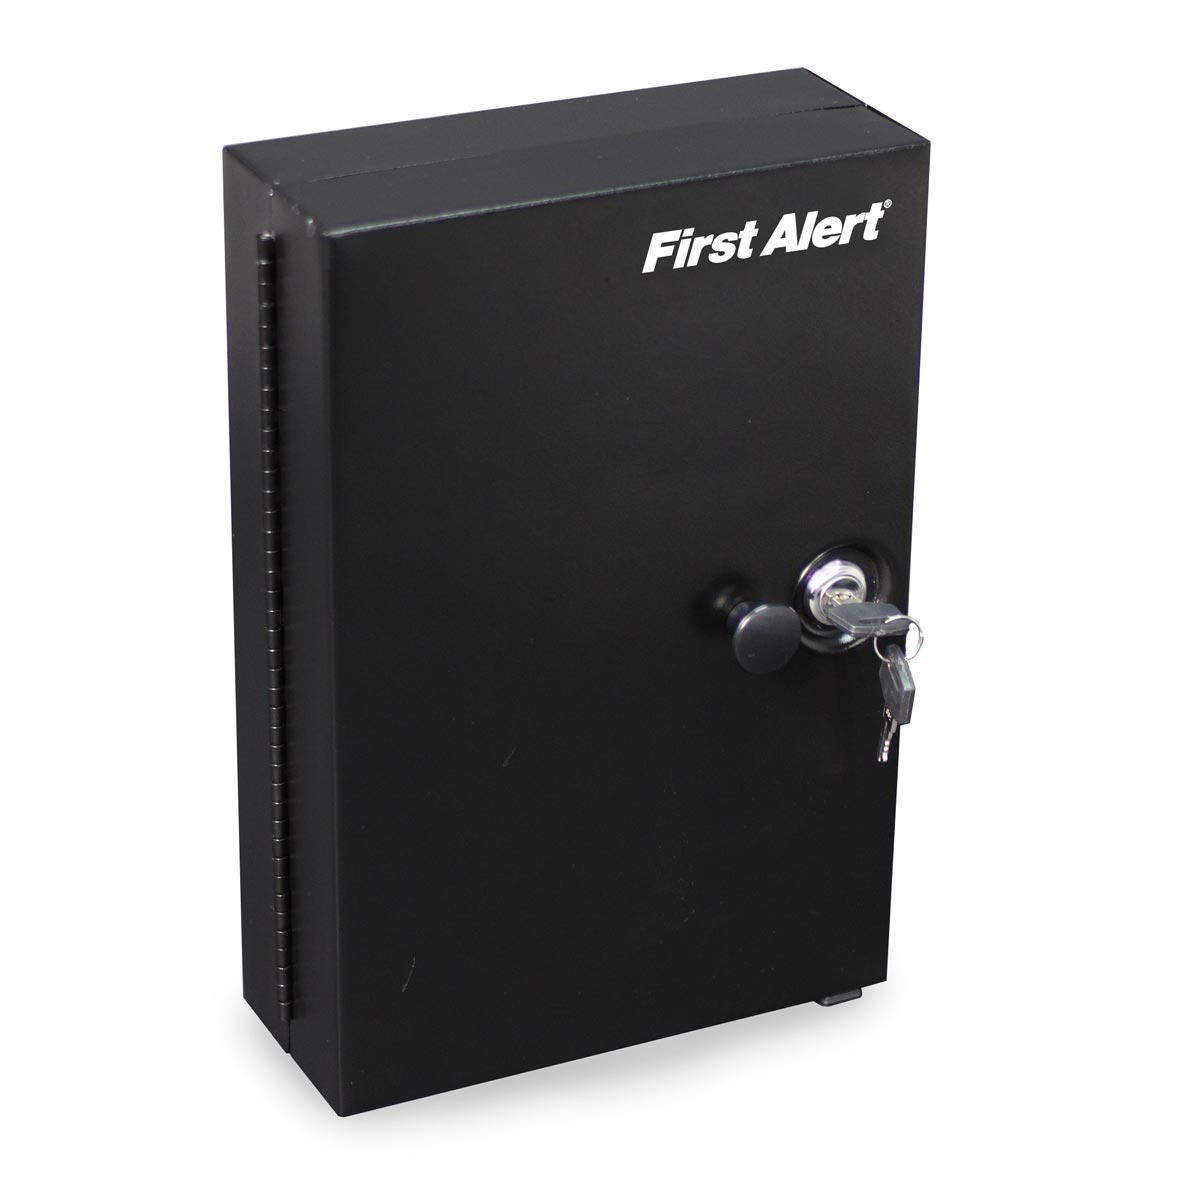 First Alert 3060F Key Security Box